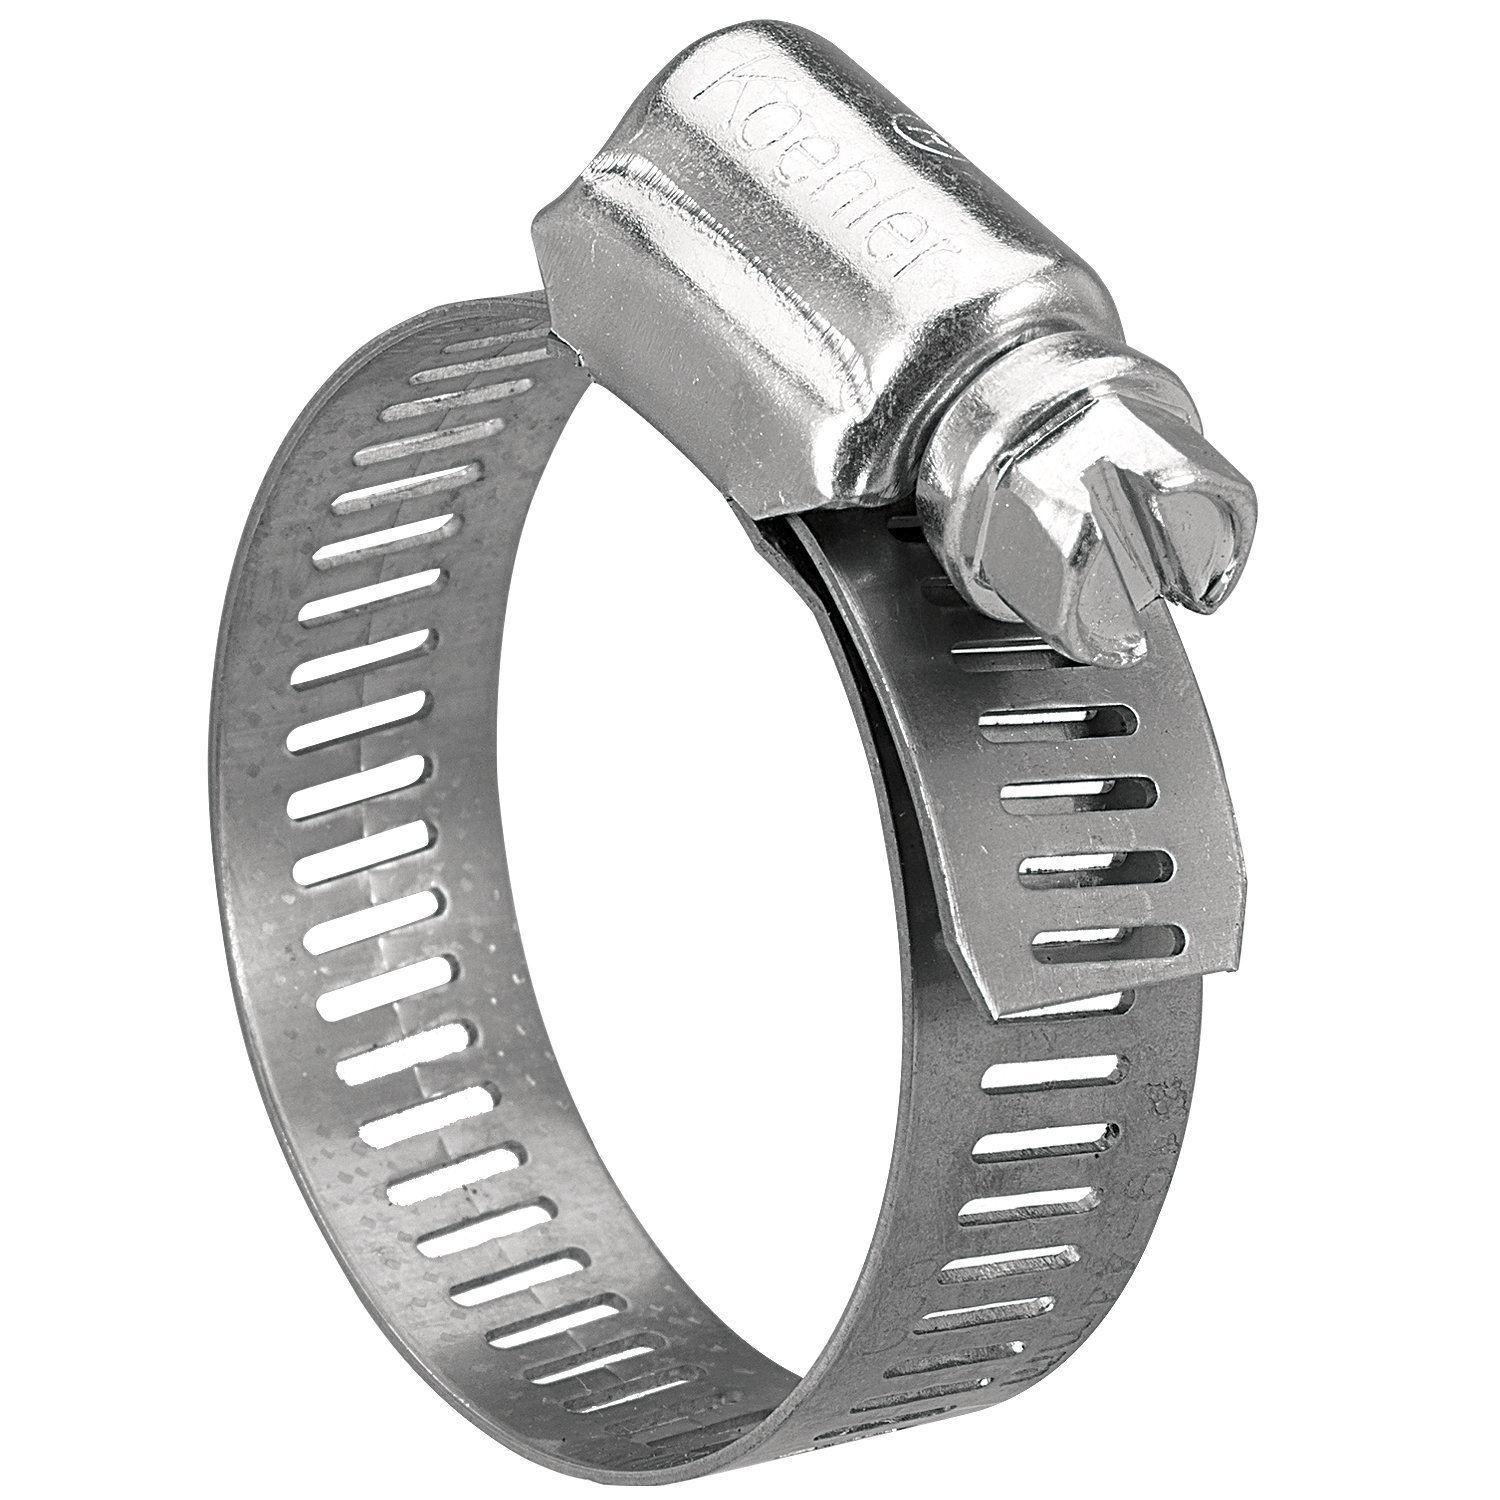 Galleon Koehler Enterprises Ke20bx 10 Piece Hose Clamp